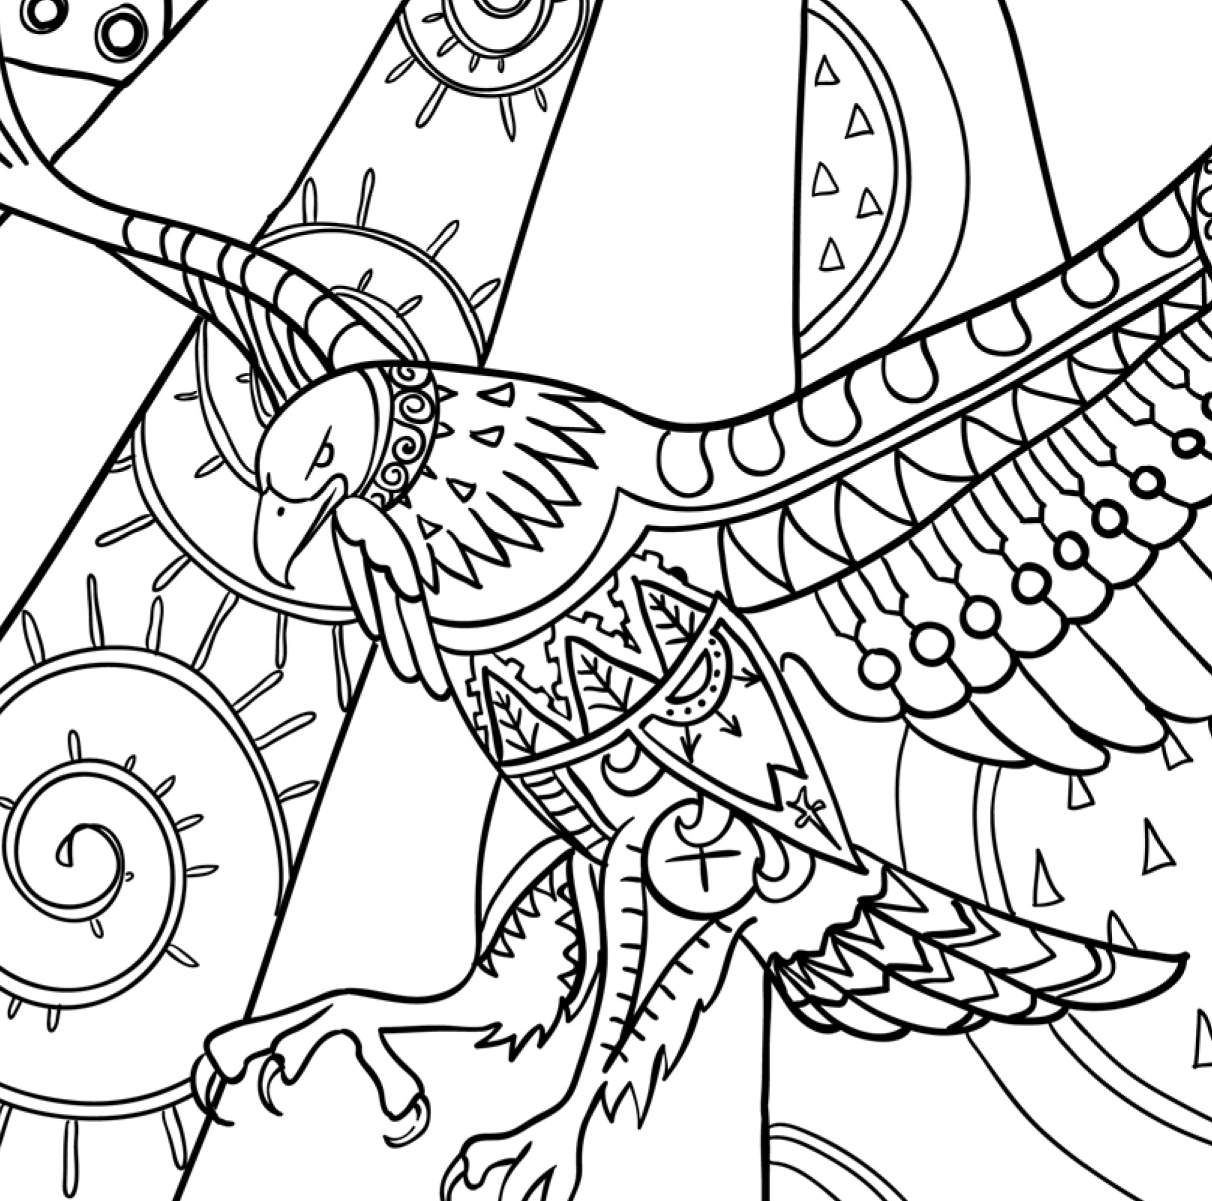 bird coloring pages for adults amazing birds adult coloring book review promotion bird for coloring pages adults